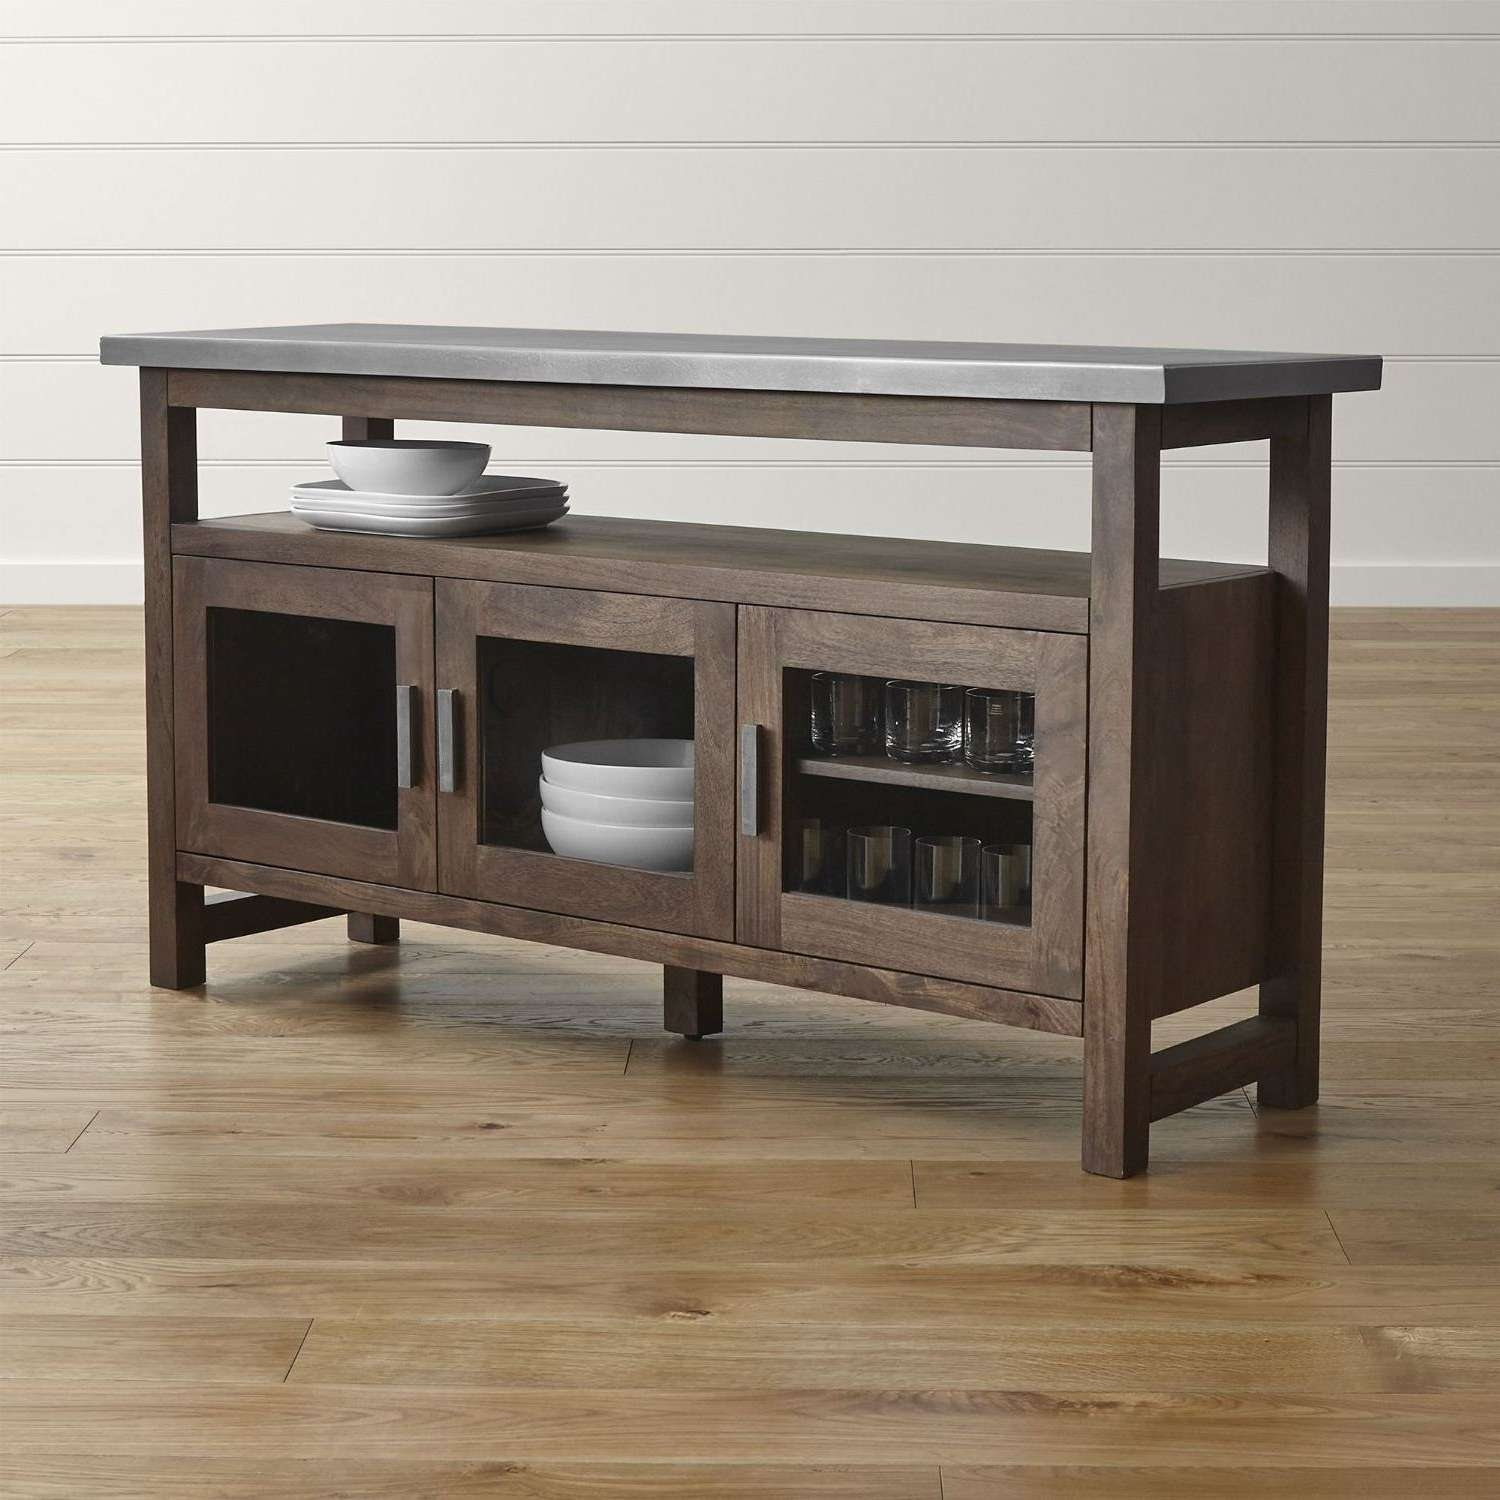 Crate Galvin Sideboard And Barrel – Mykitchenbuddy In Crate And Barrel Sideboards (View 12 of 20)